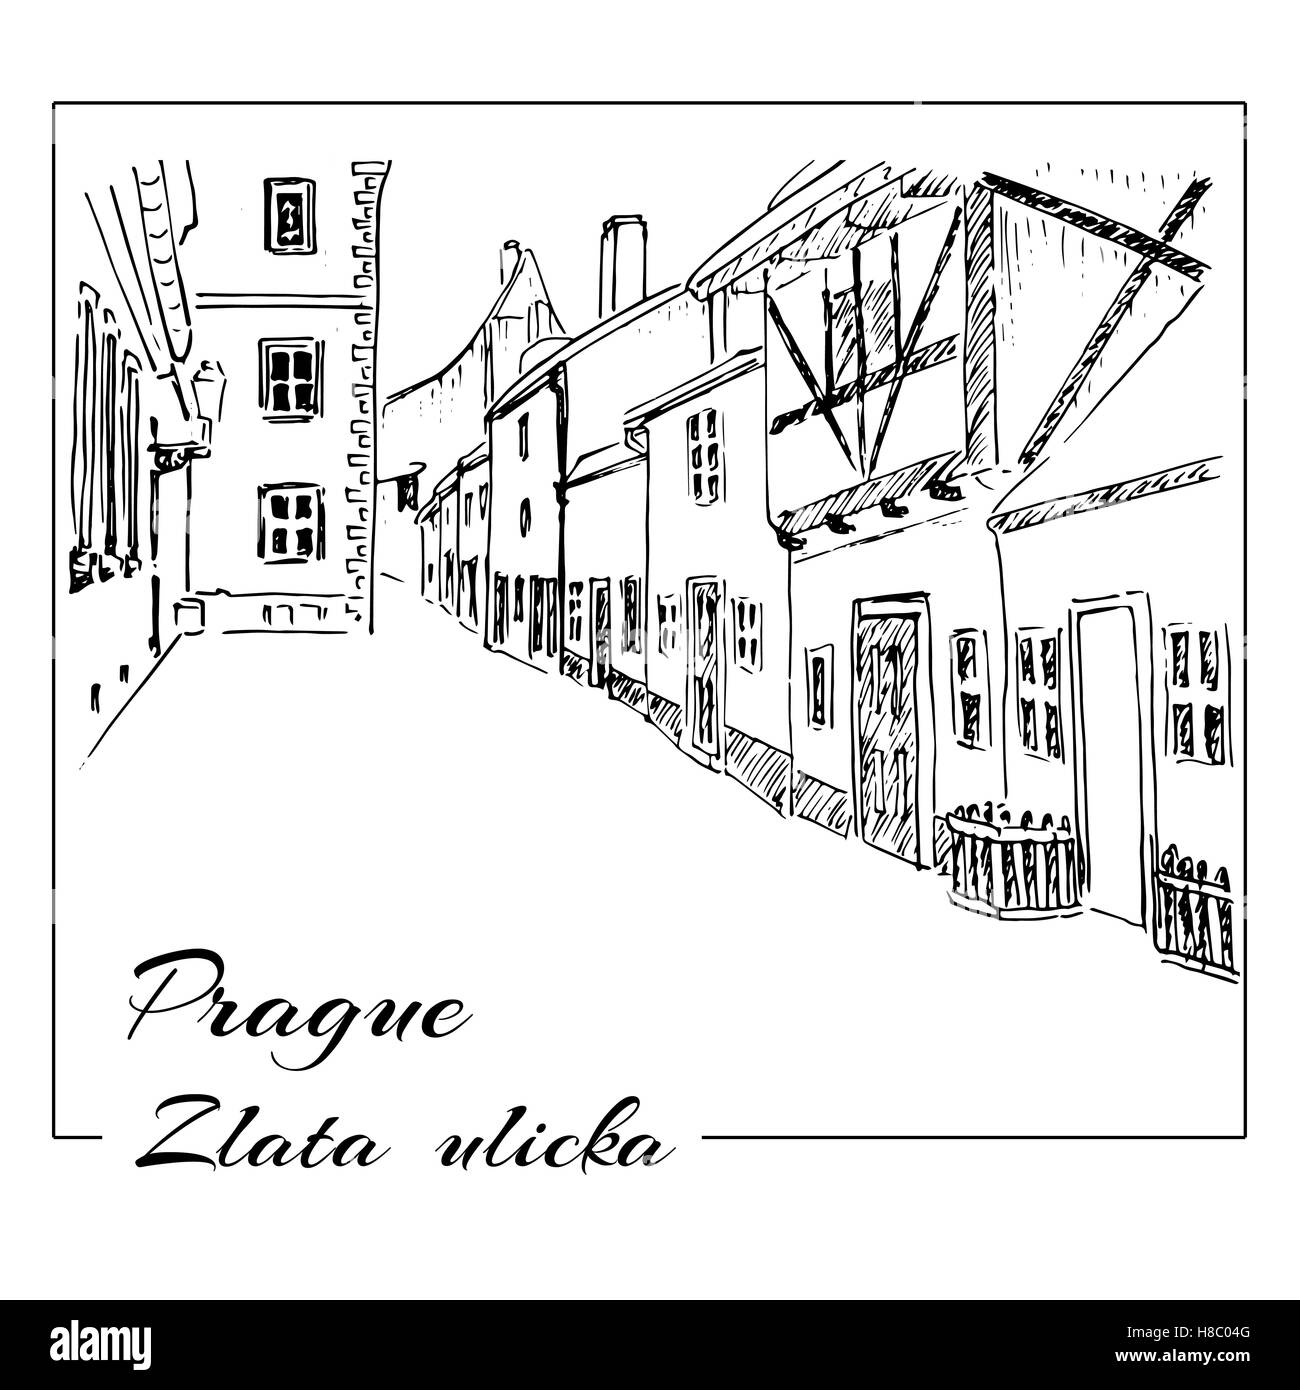 Prague. Vector hand drawn sketch. Zlata ulicka - Golden street. - Stock Image